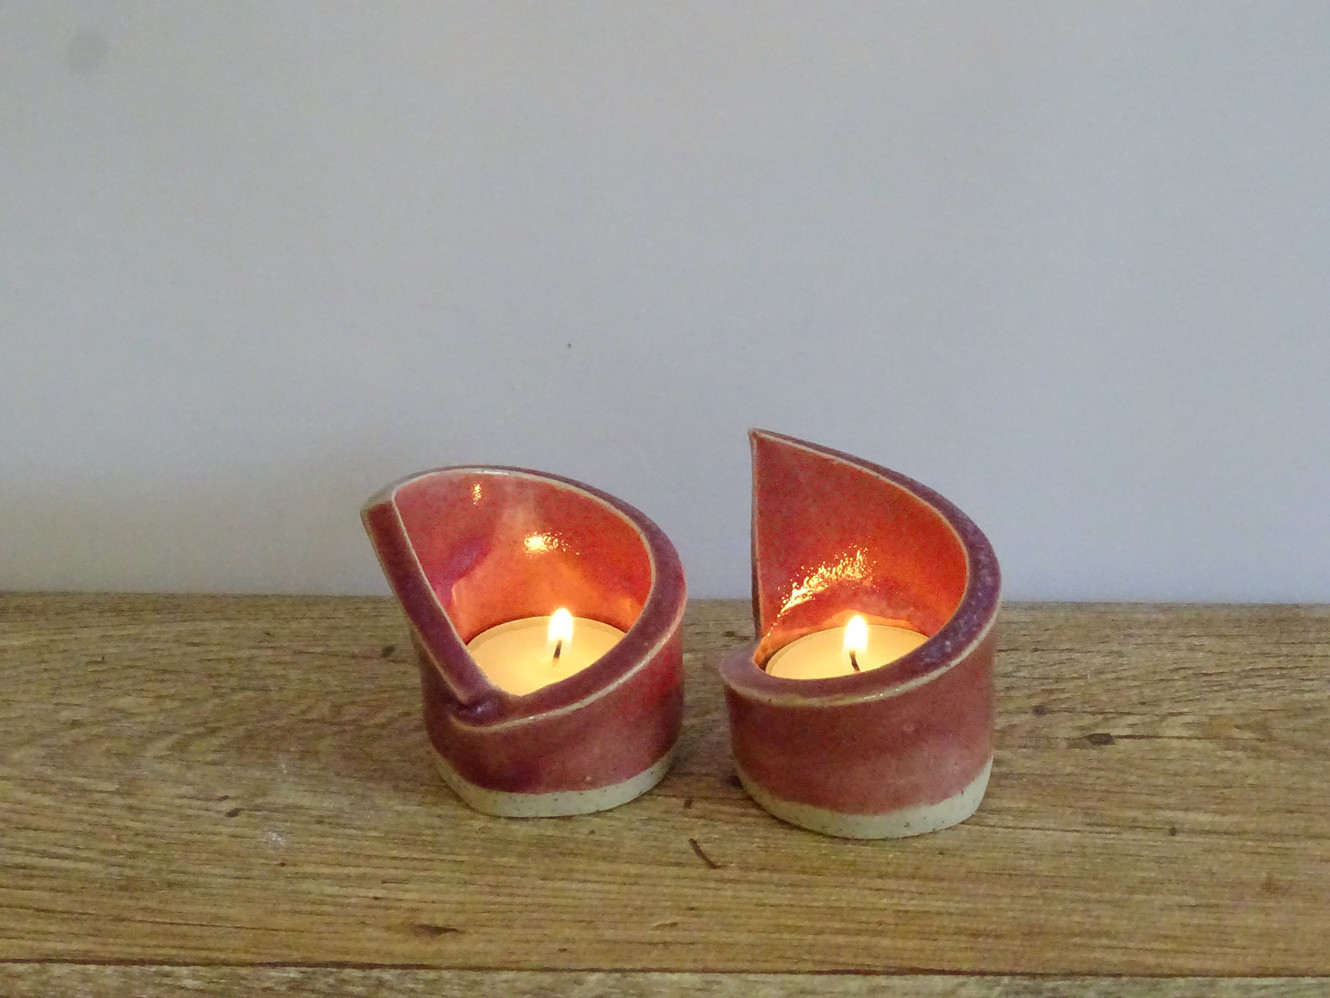 Assymetric Candle Lights